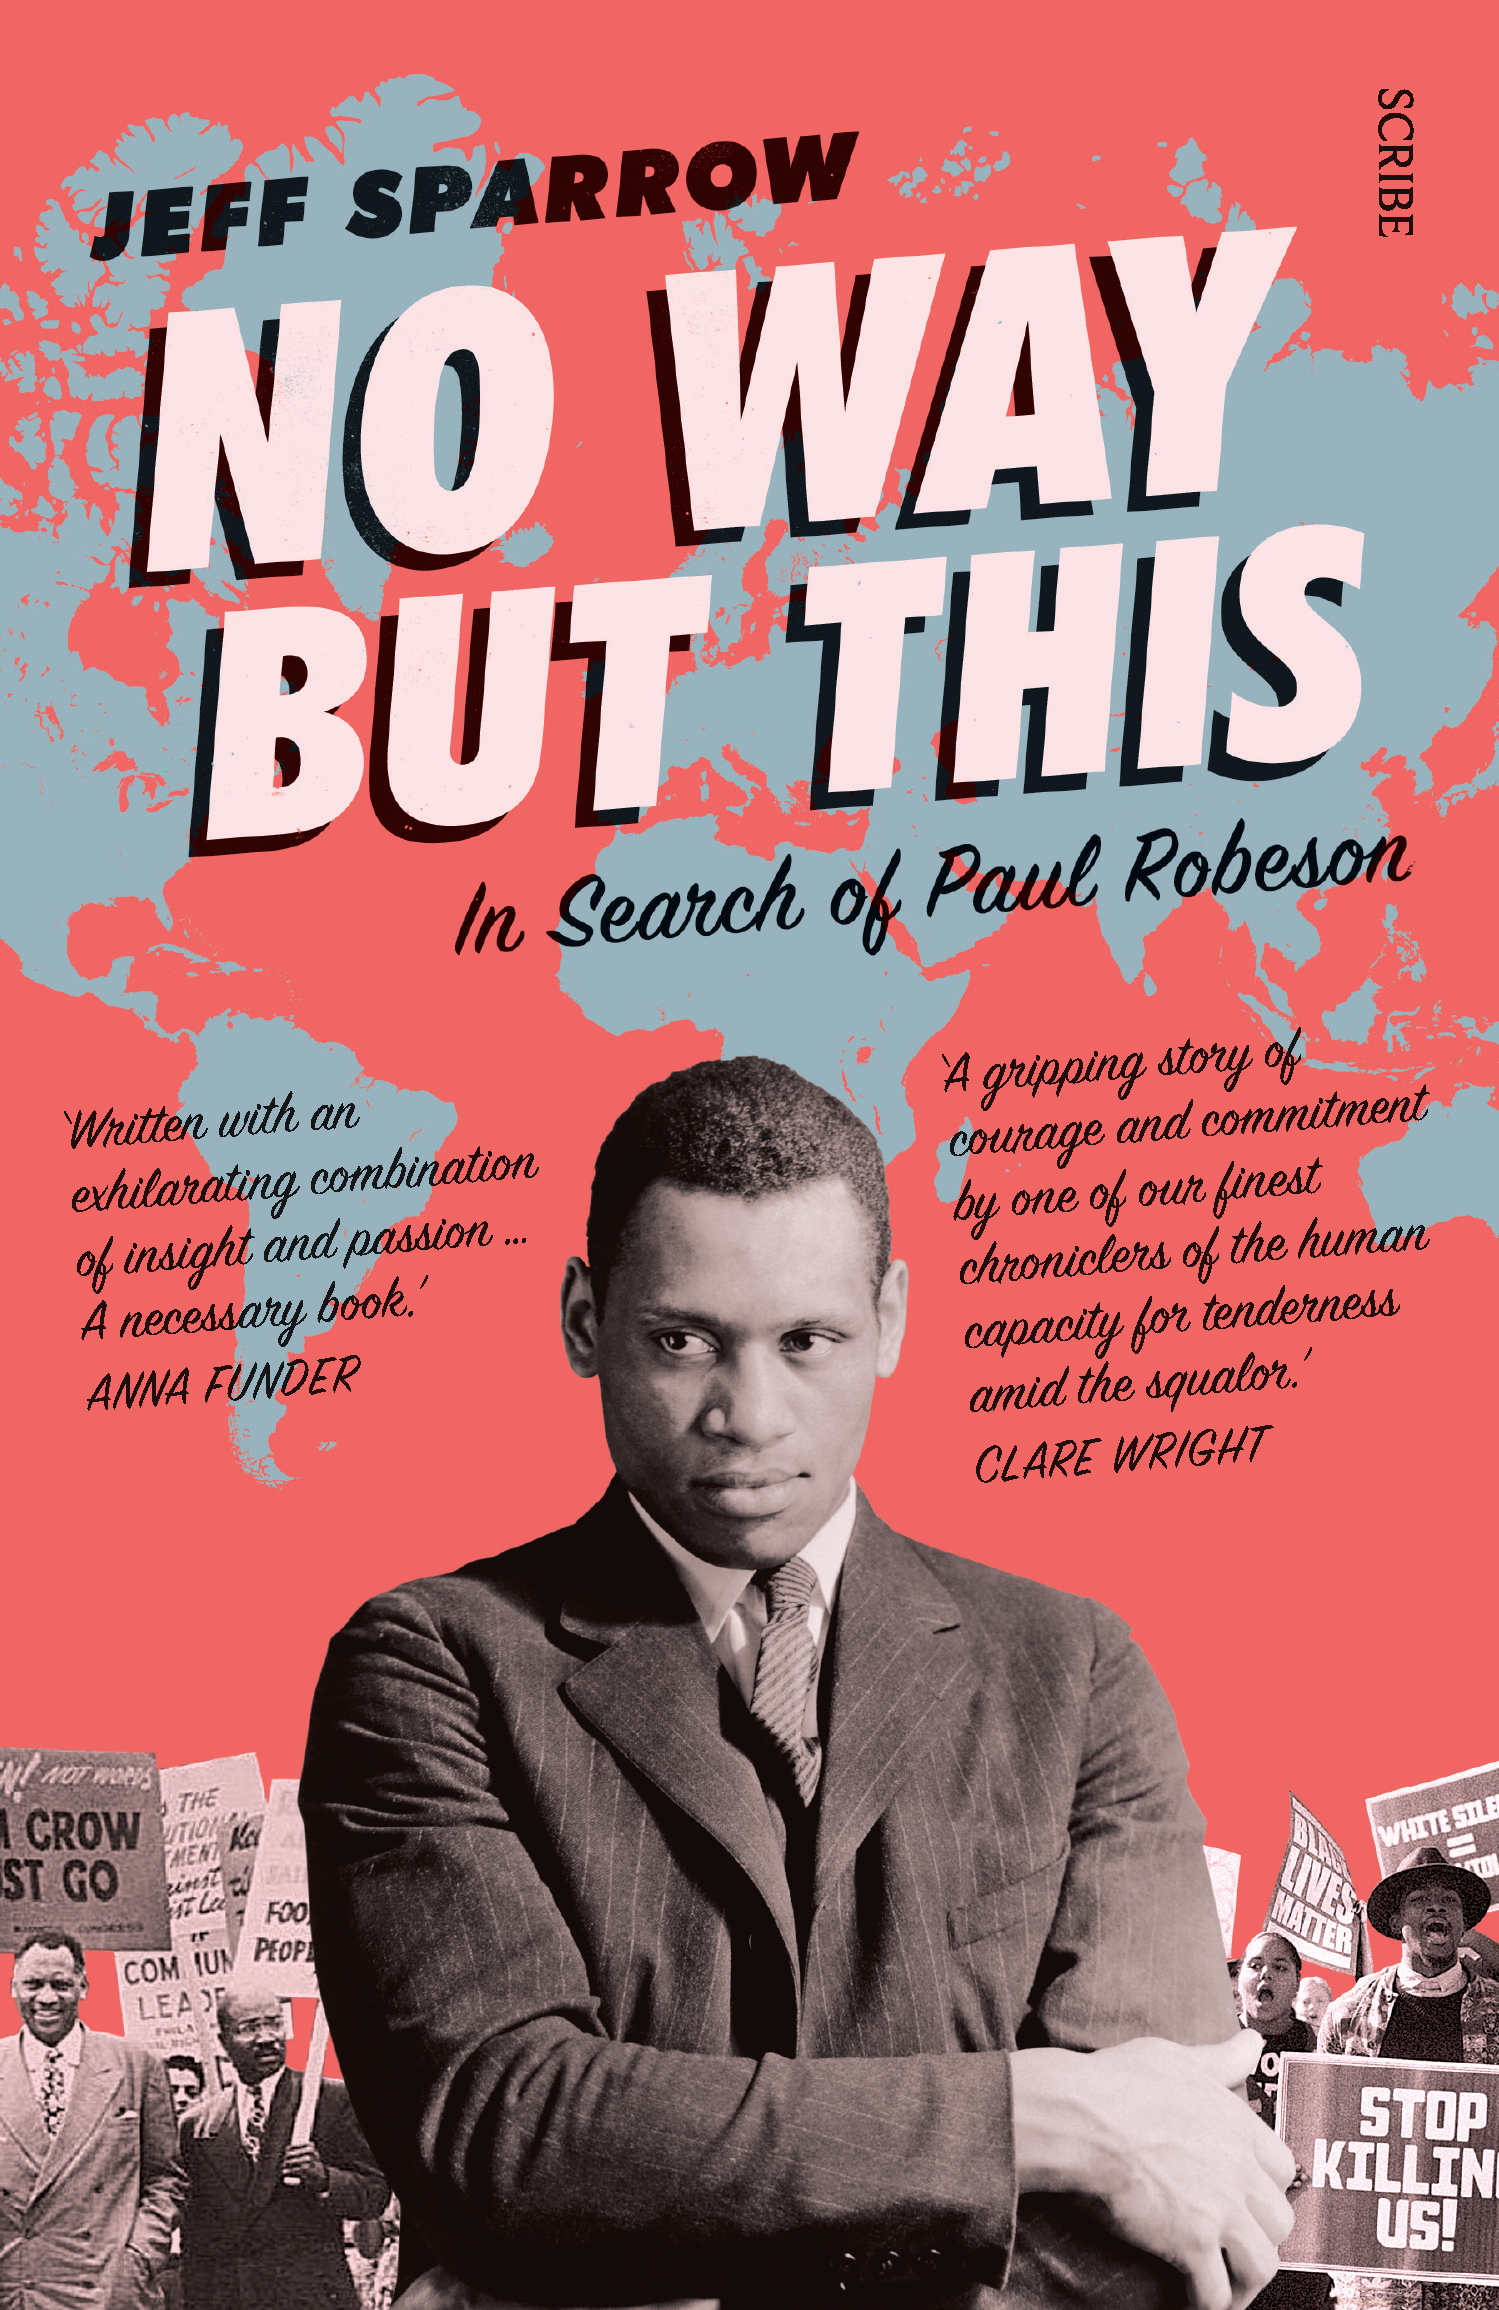 No Way But This In Search of Paul Robeson